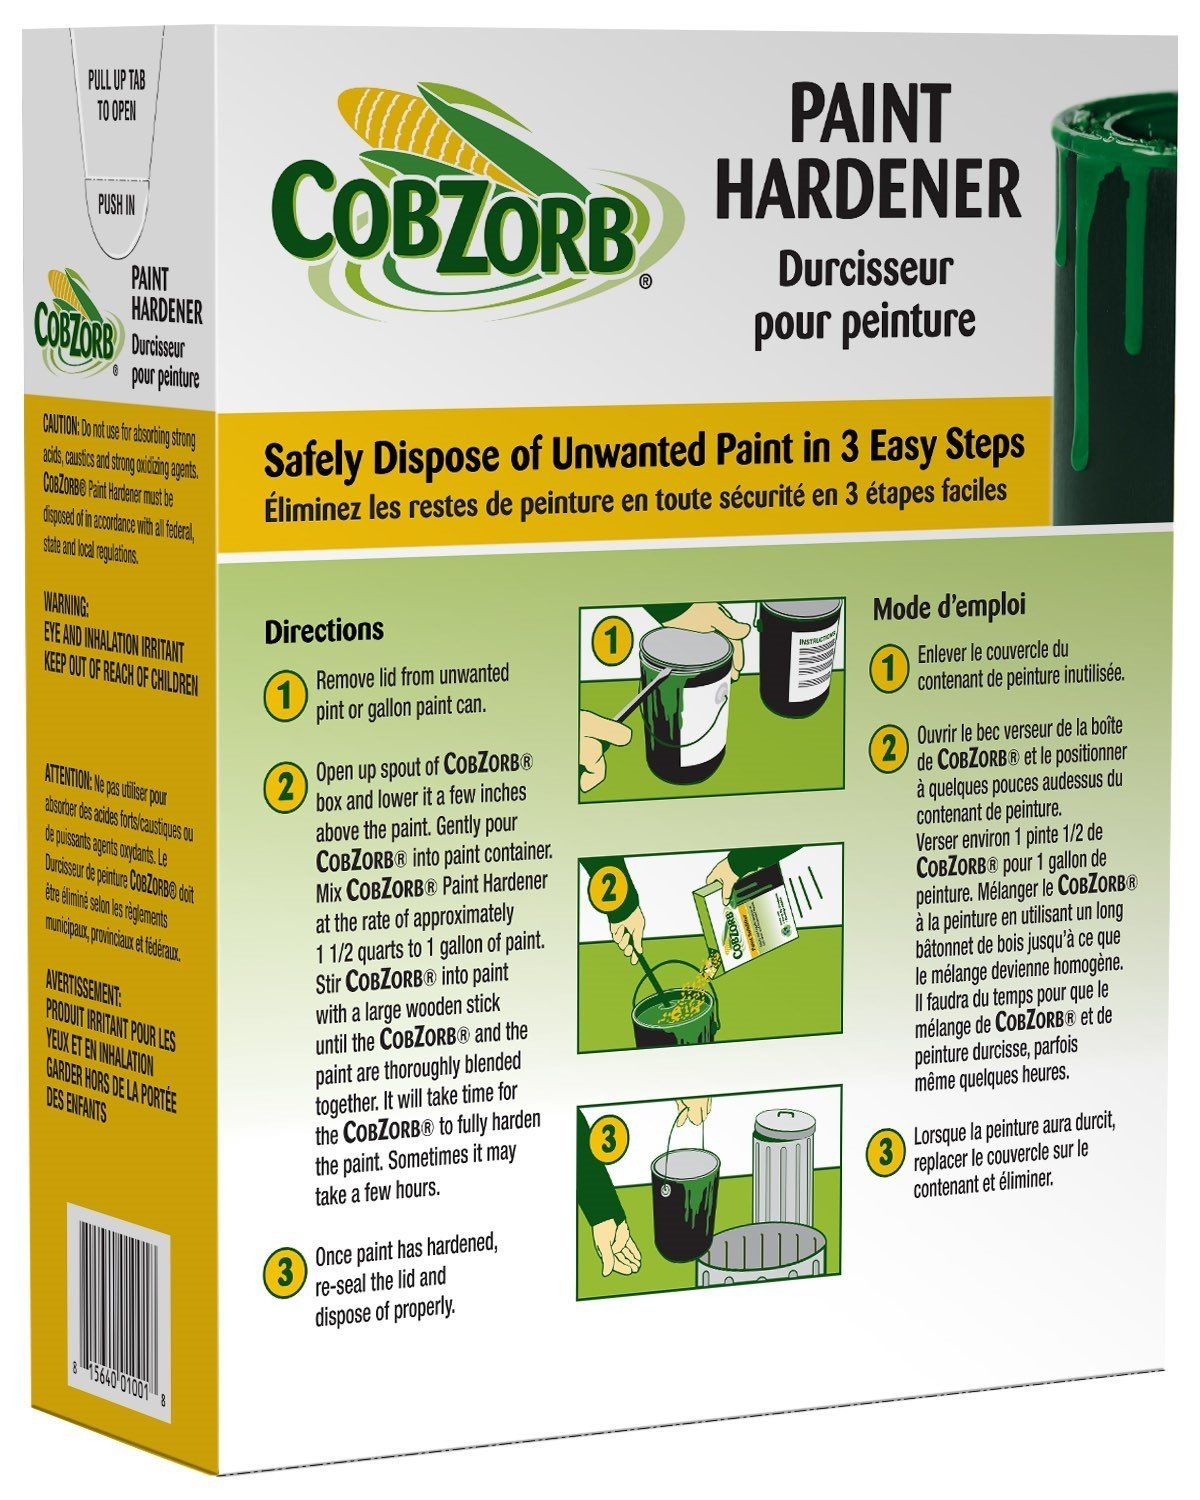 CobZorb Paint Hardener 4.5 lb. Box